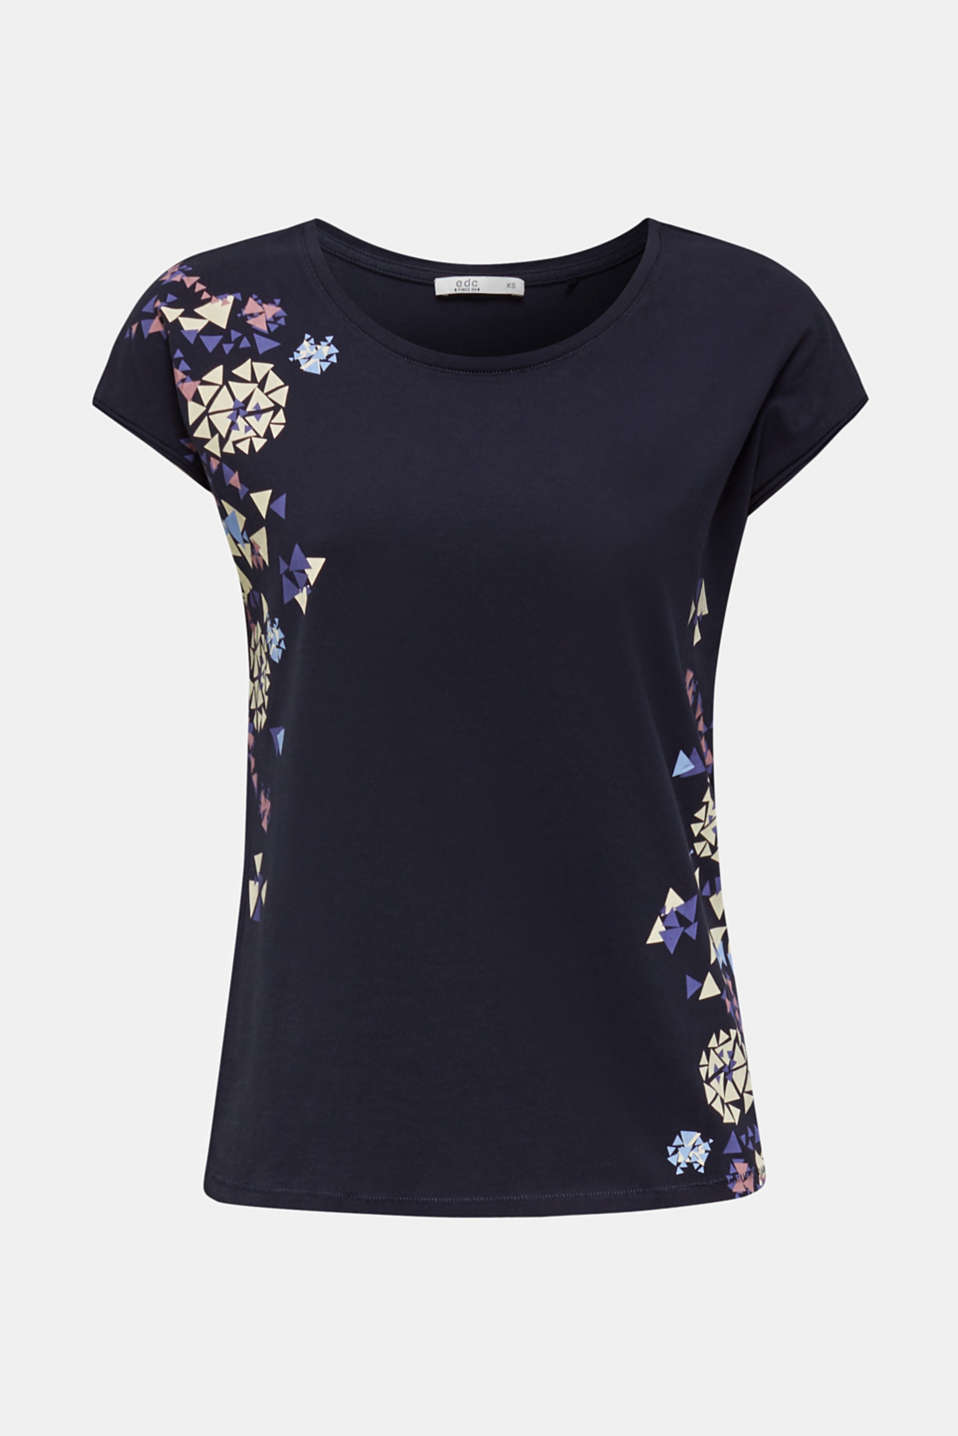 T-shirt with geometric print, 100% cotton, NAVY, detail image number 5